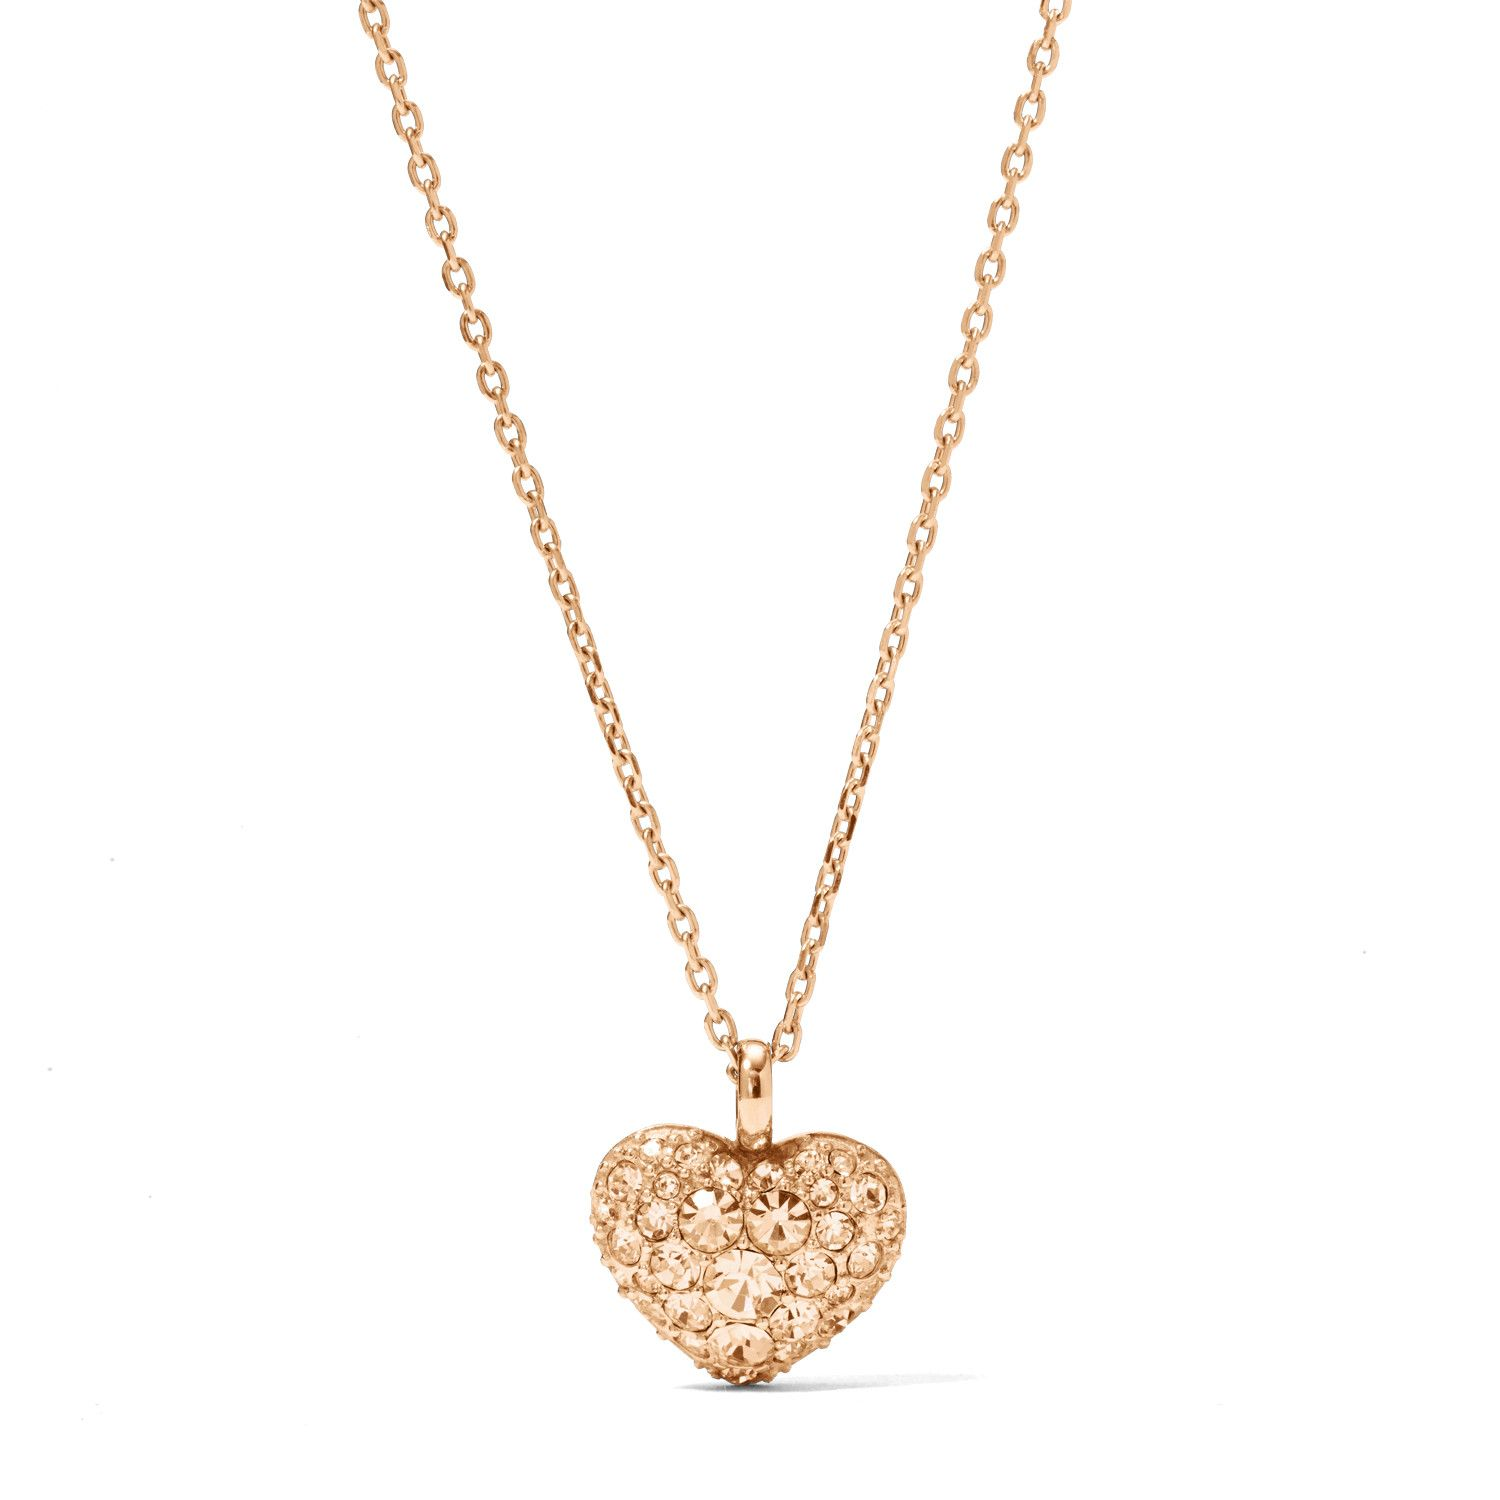 Isn't it romantic? Our sparkling peach pave pendant fulfills your heart's desire for charming accessories.